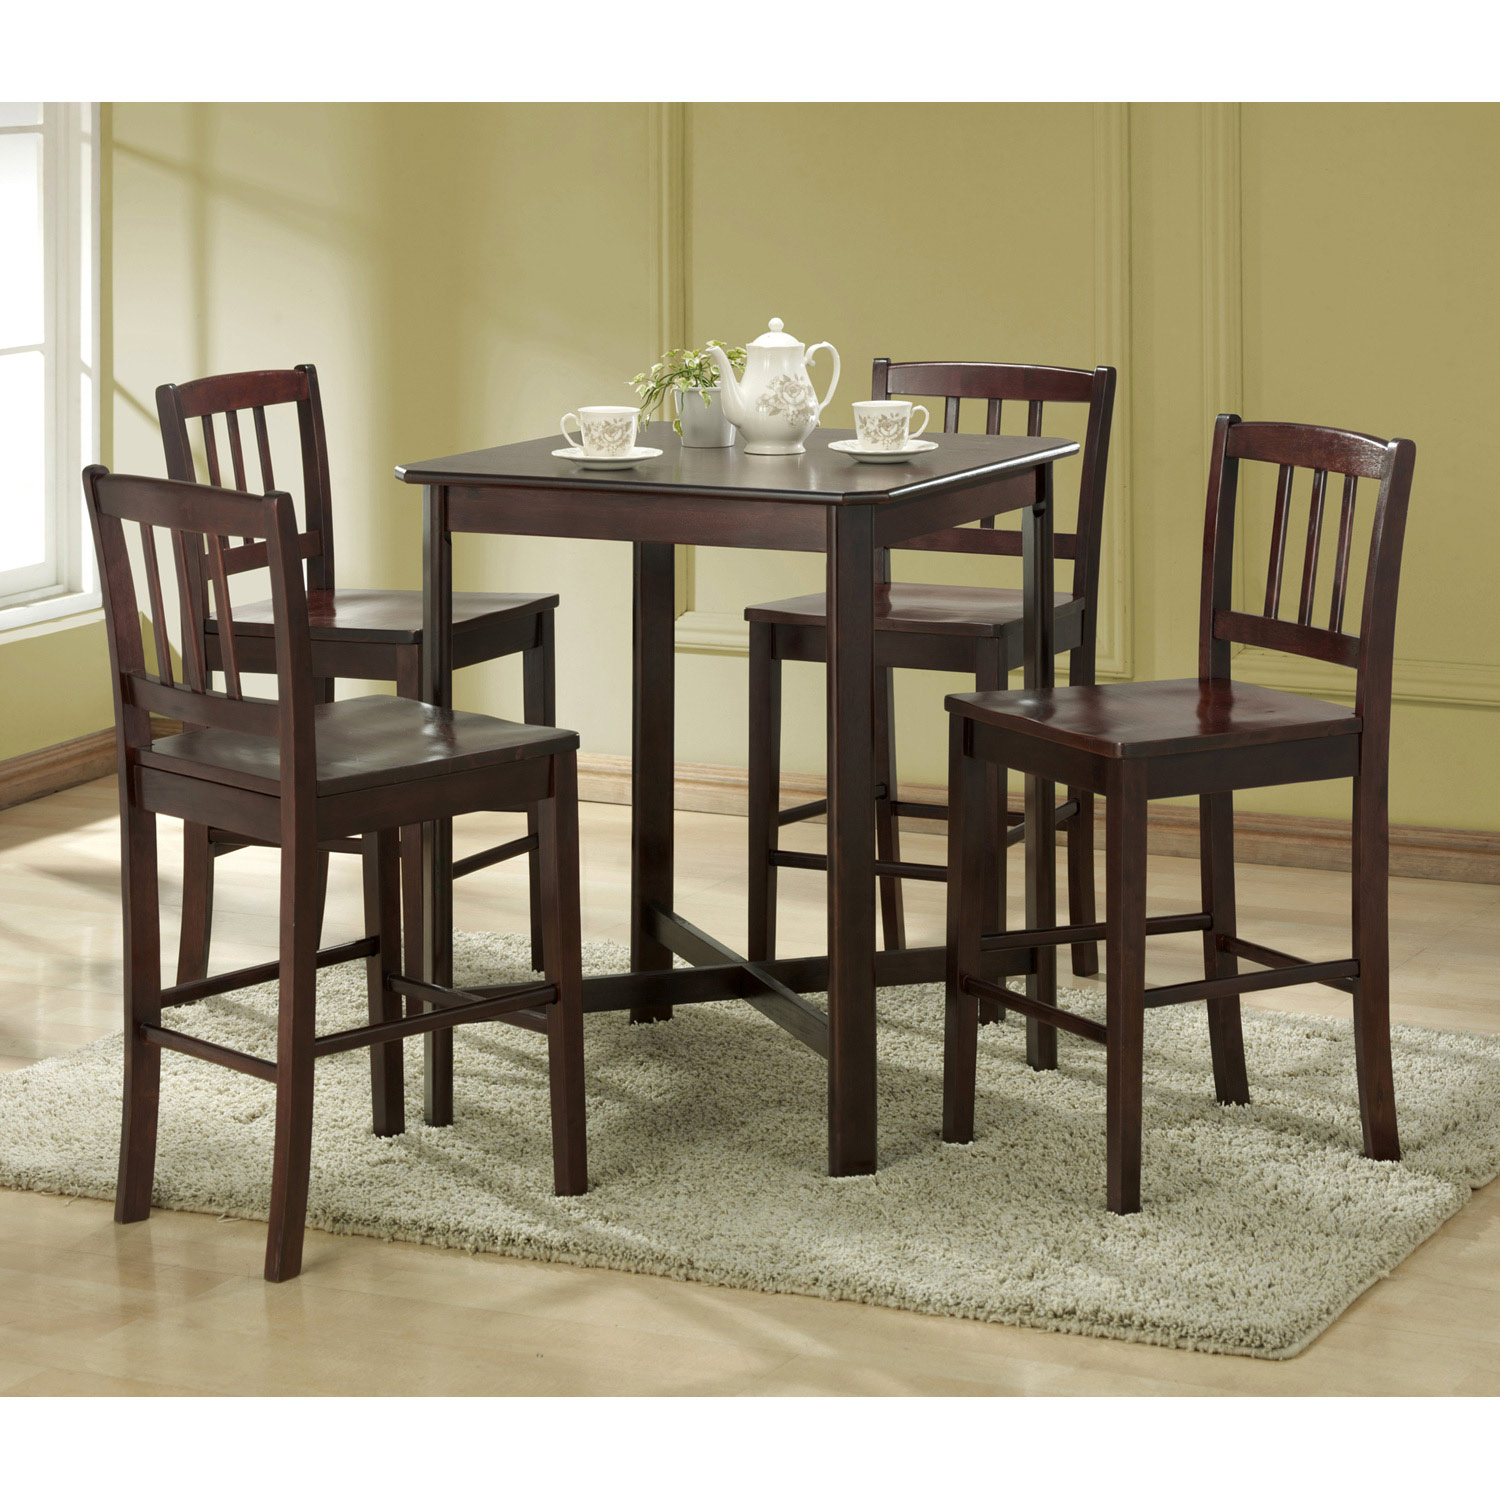 5-Piece Wood Pub Table Set in Espresso